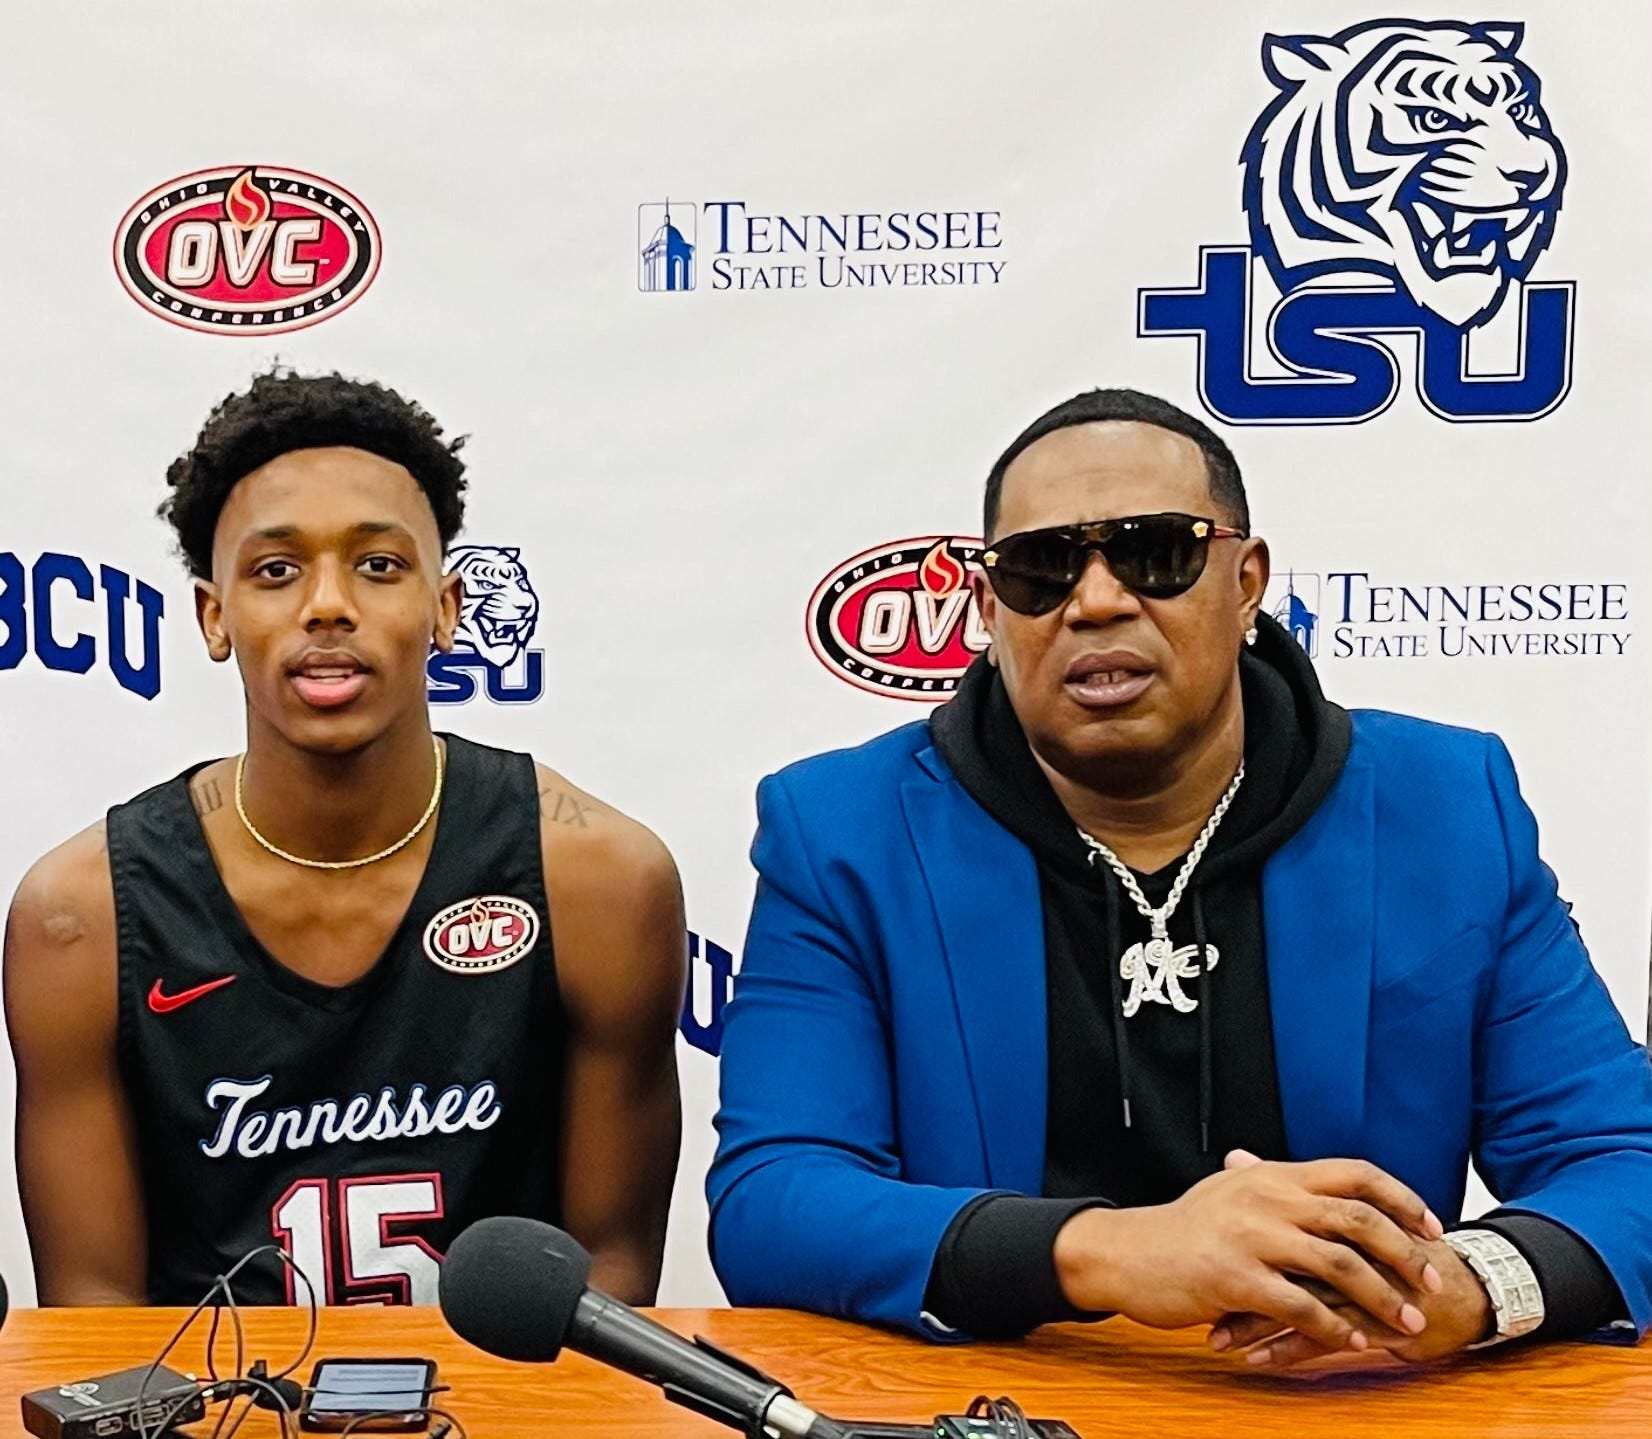 Master P's Son Hercy Miller Signs  Million Endorsement Deal With Tech Company After NCAA Rule Change